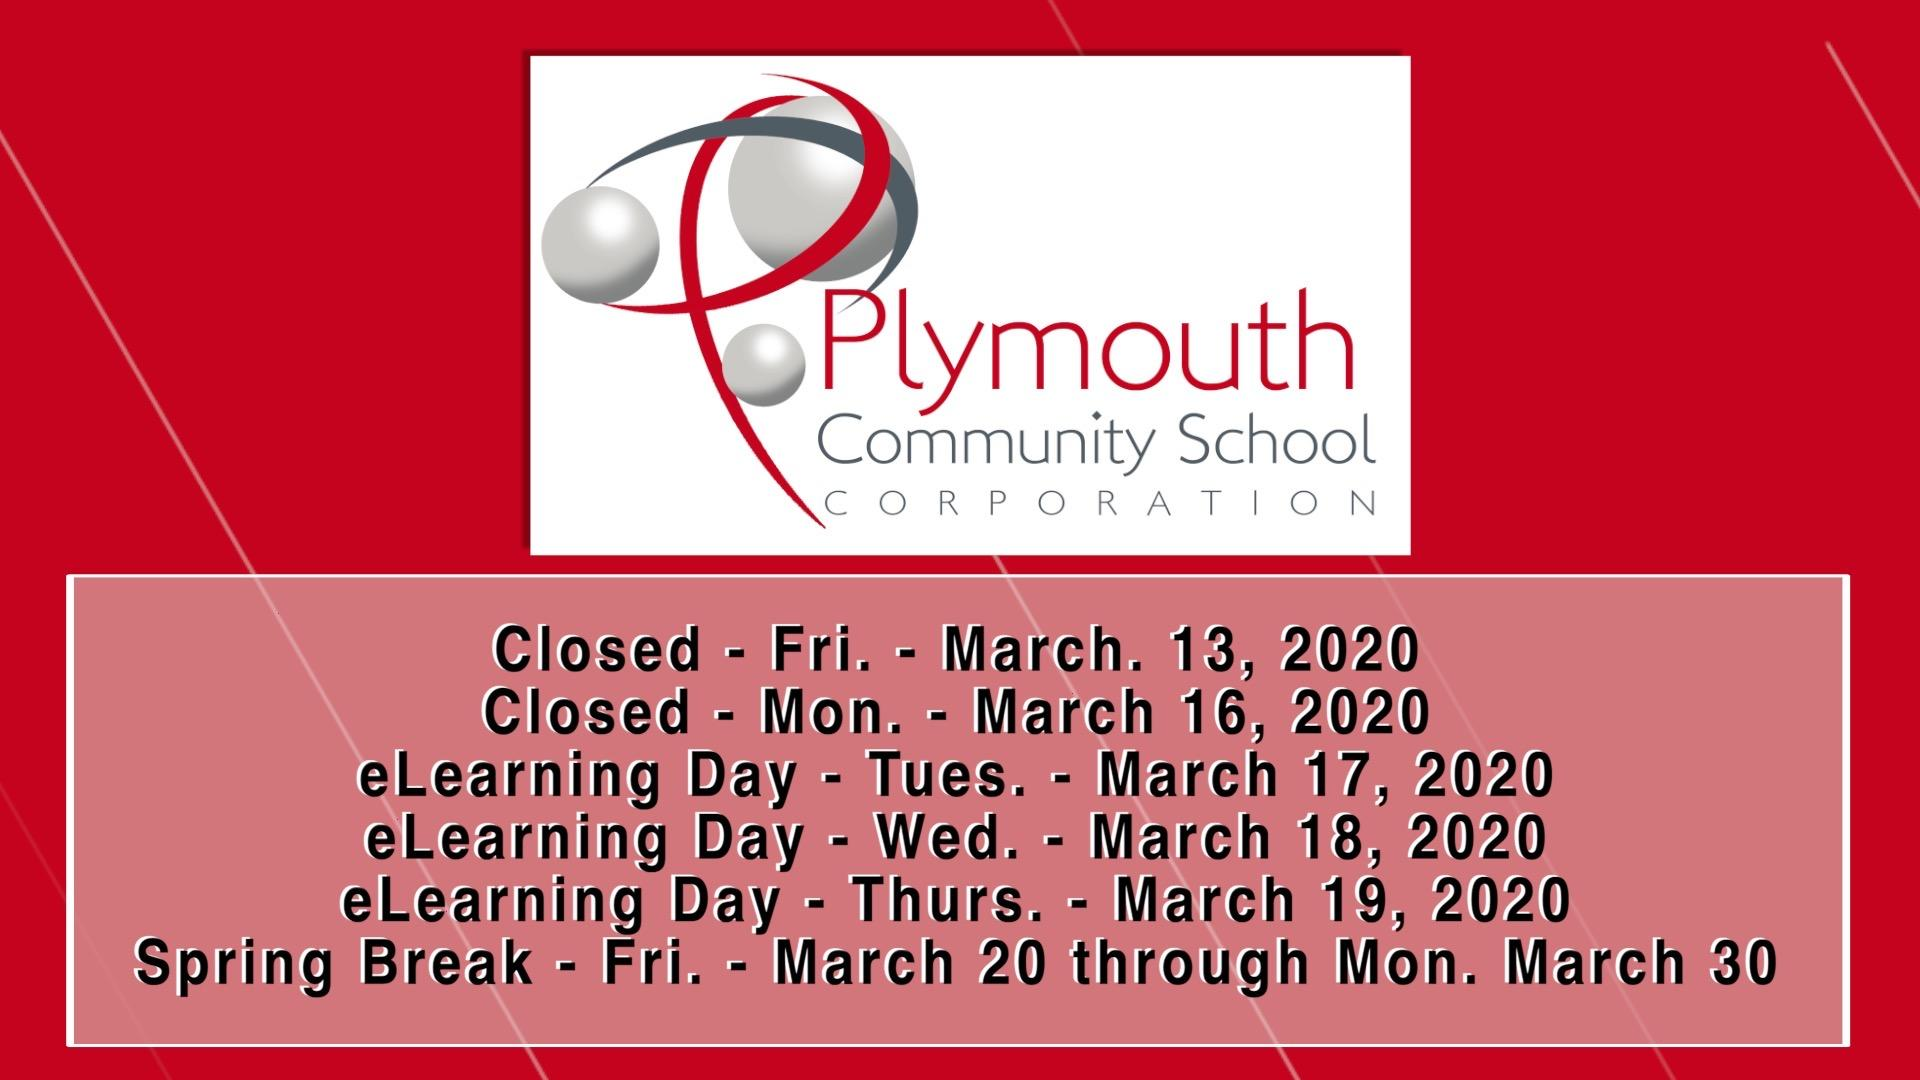 Closed-PCSC logo-Friday, March 13, 2020 and Monday, March 16, 2020-eLearning days Tuesday, March 17, Wednesday, March 18, Thursday, March 19, Spring Break Friday, March 20 through Monday, March 30